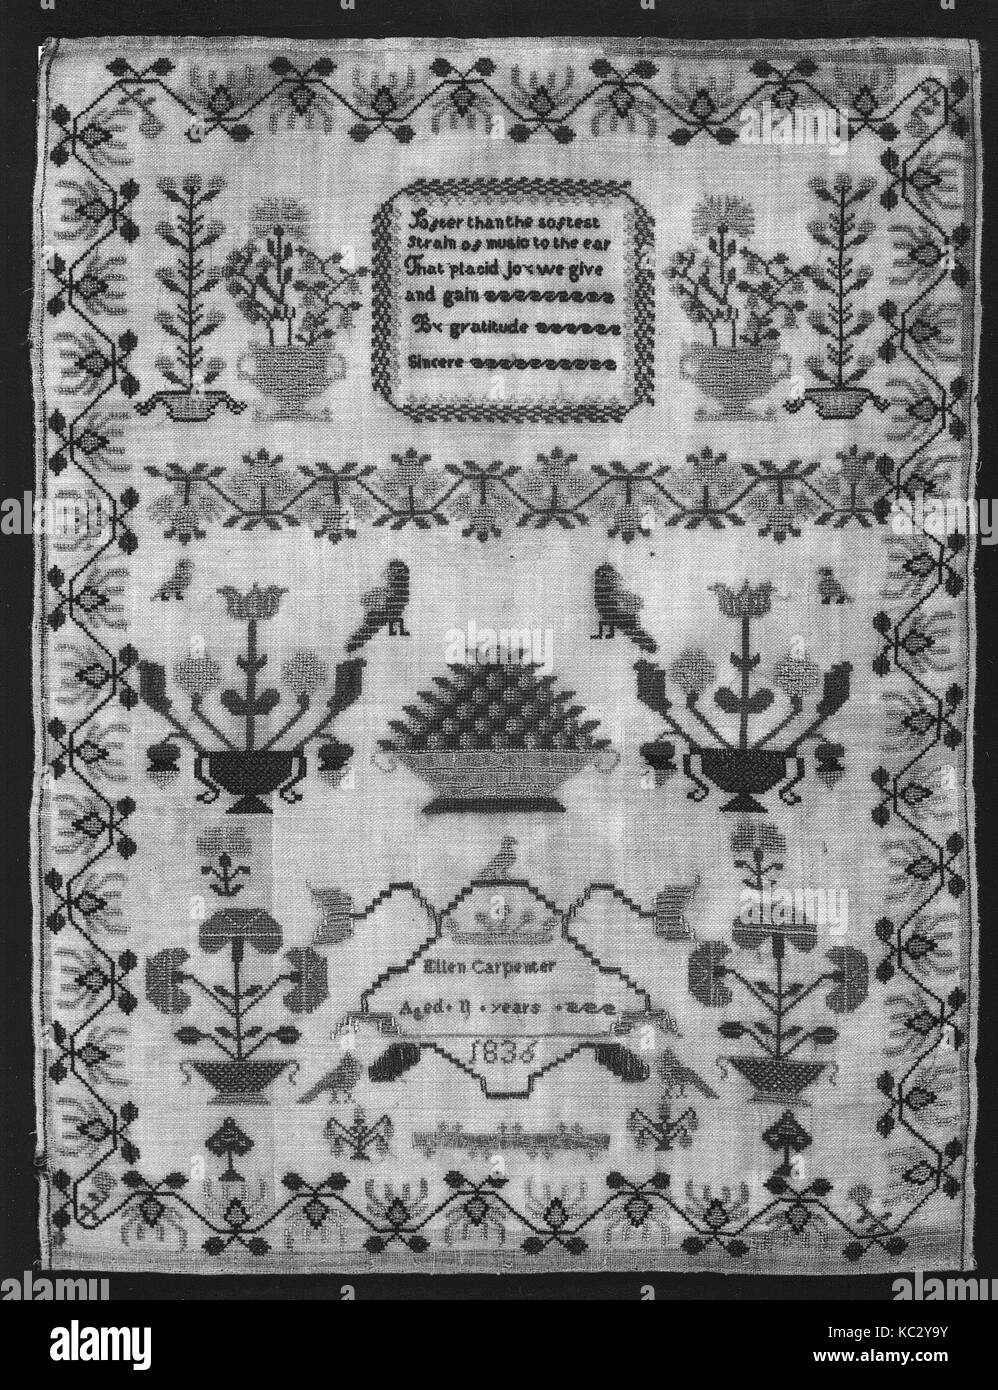 Sampler, 1836, British, Silk on wool canvas, H. 17 3/8 x W. 13 1/4 inches (44.1 x 33.7 cm), Textiles-Embroidered - Stock Image